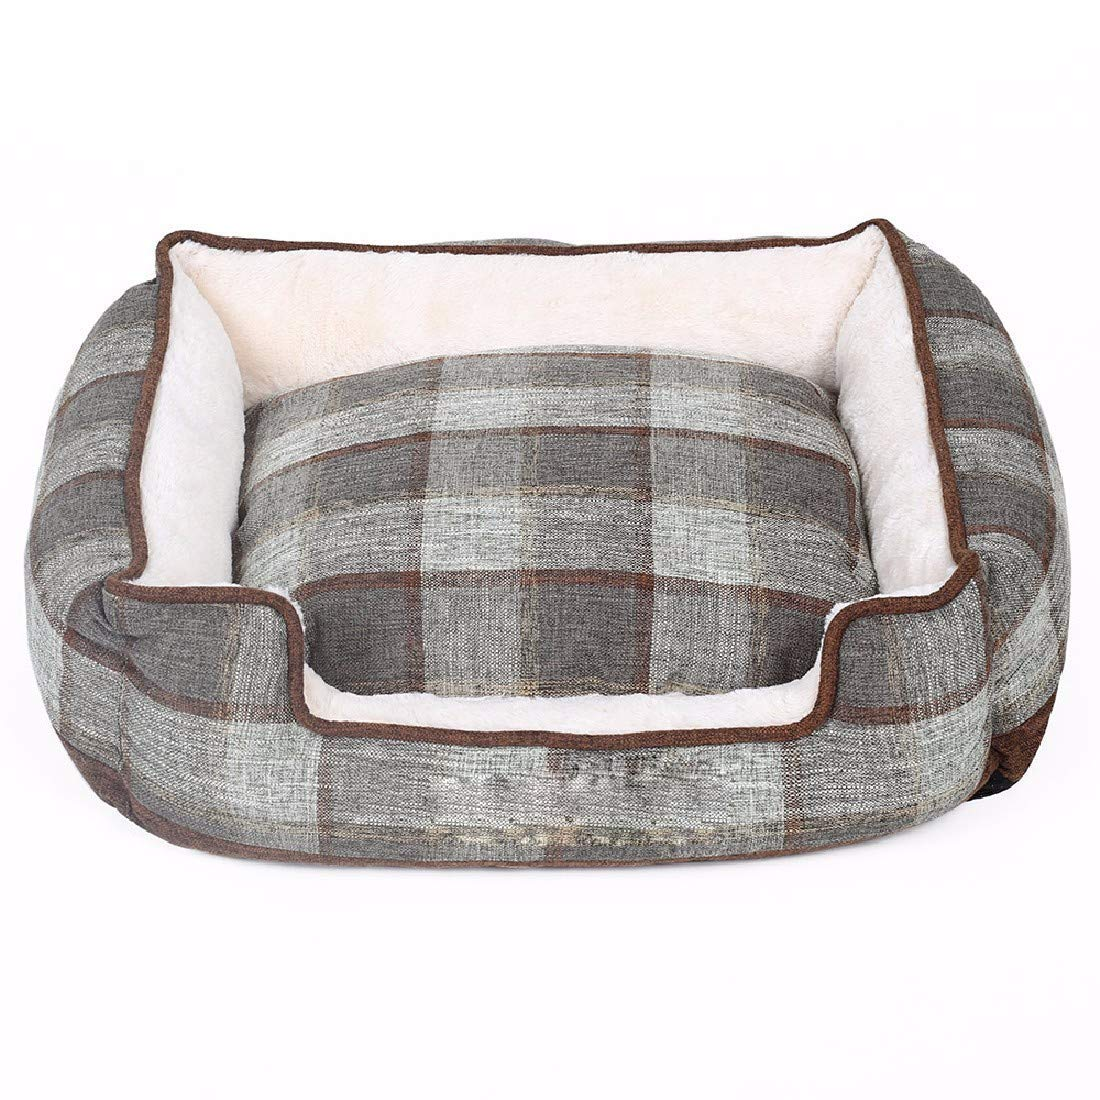 Gperw Pet Dog Cat House Bed Dogs small dogs puppies four seasons can be disassembled and washed warm winter nest Non Slip Cushion Pad